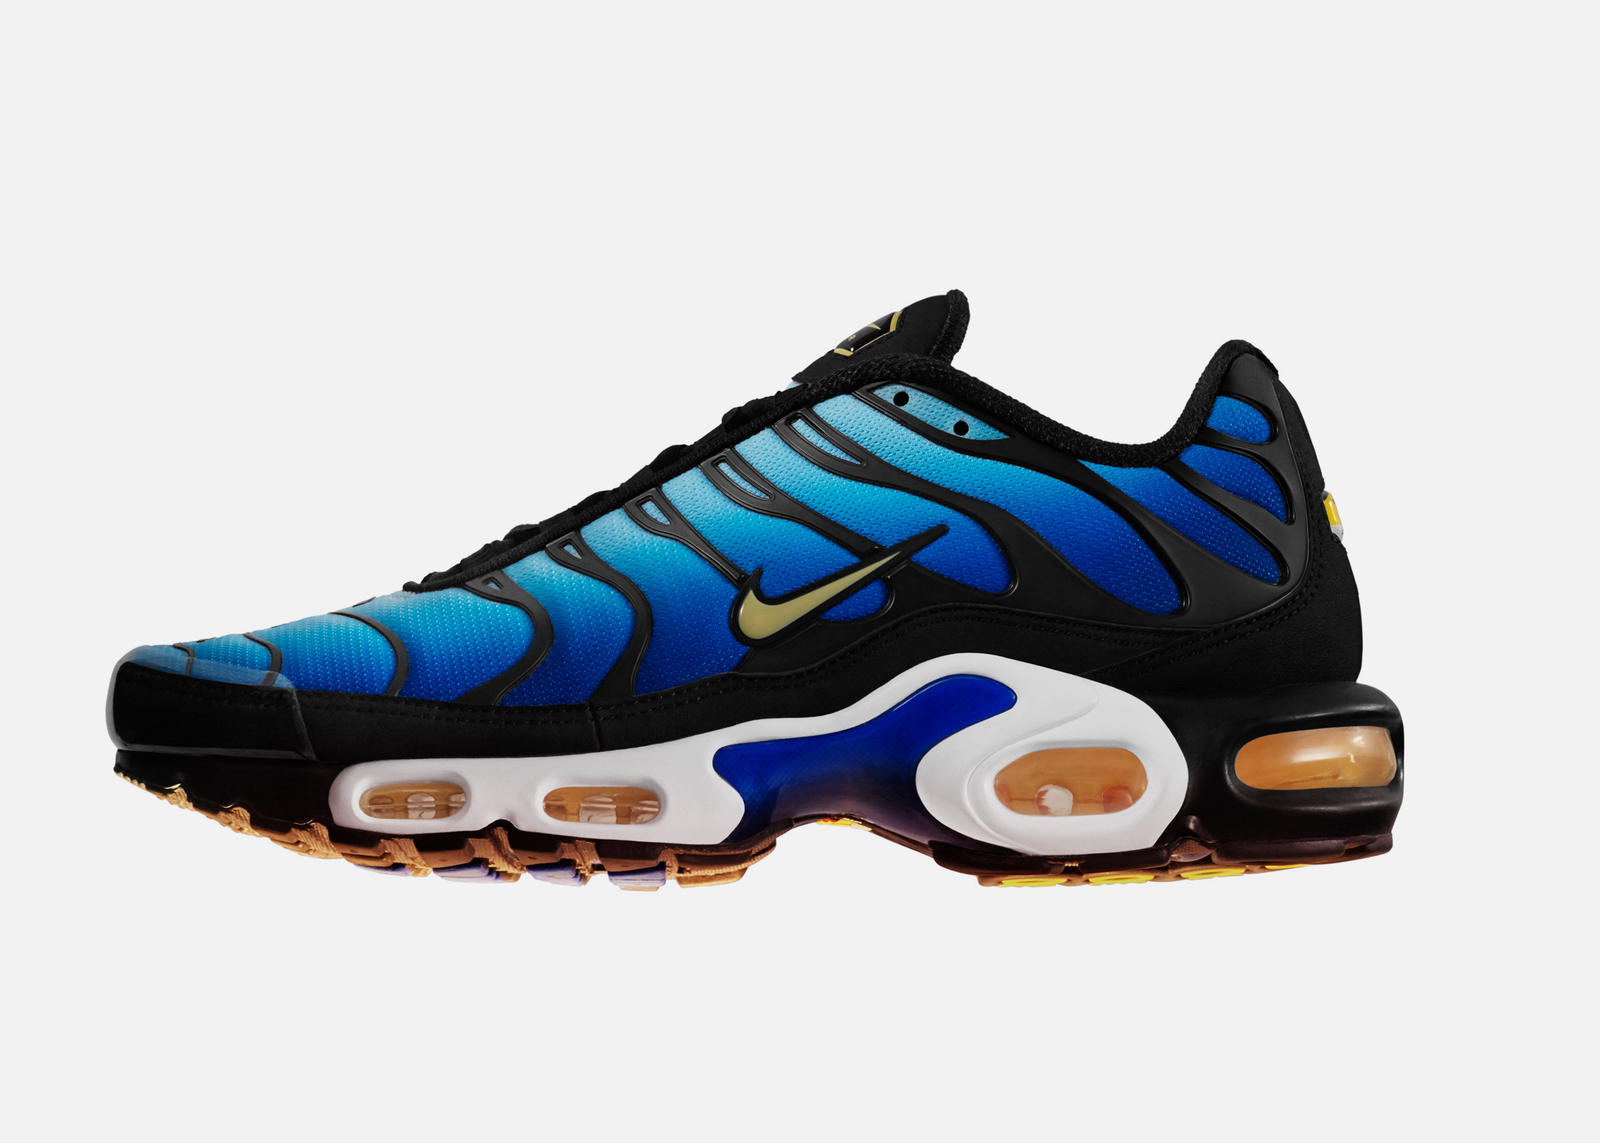 online retailer 0ffda 702e8 The Untold Story of the Nike Air Max Plus 20